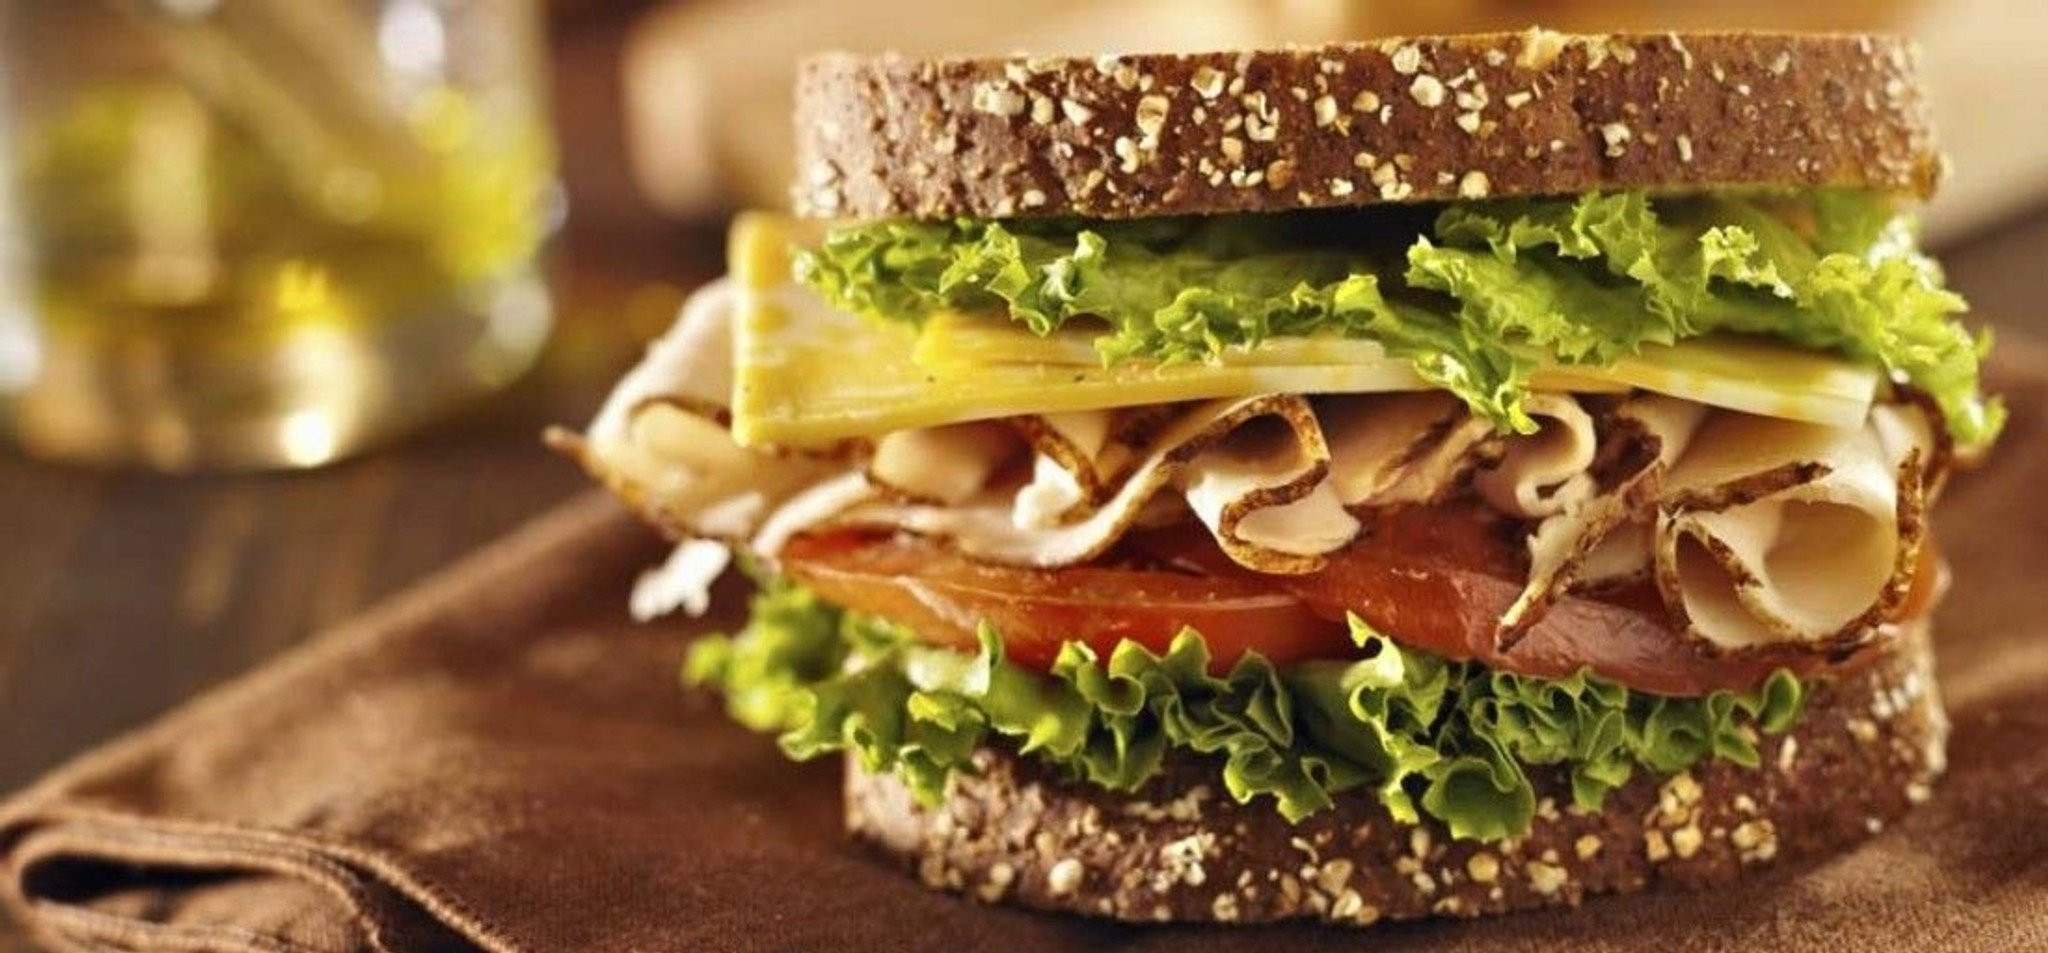 Healthy Sandwiches for Your Brown Bag Lunch